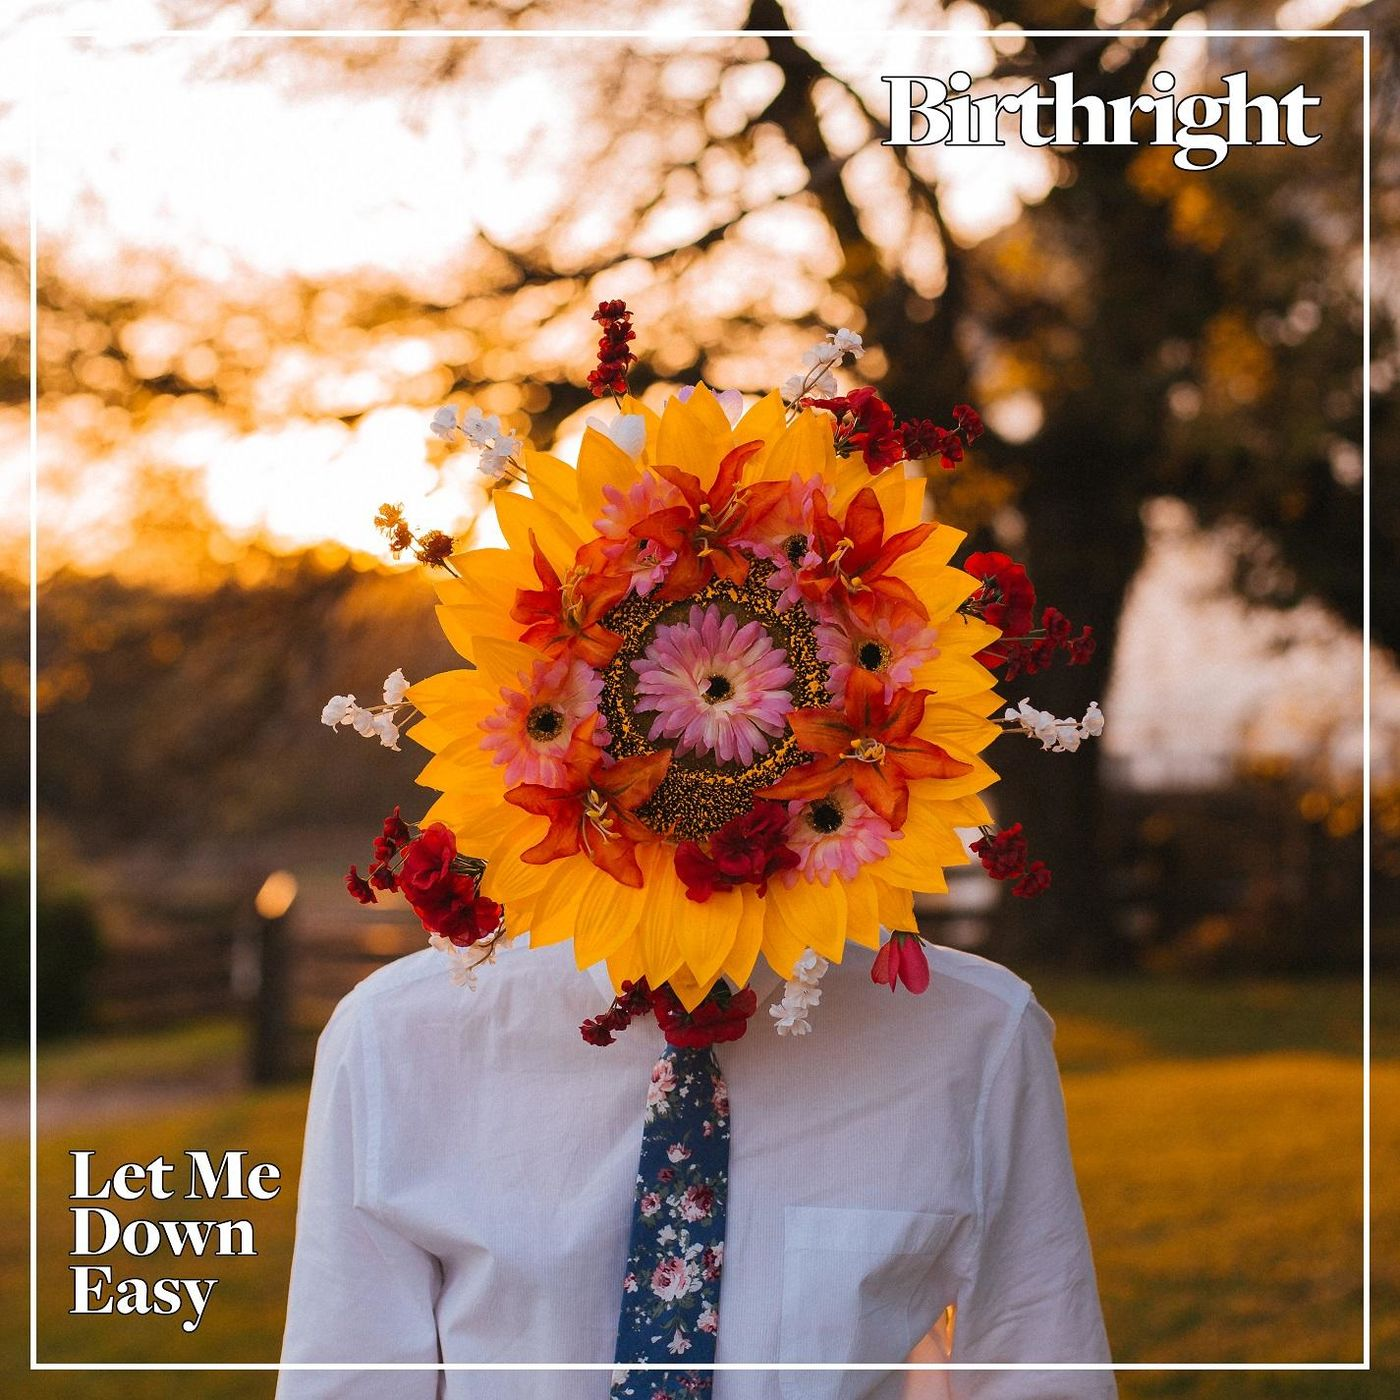 Birthright — Let Me Down Easy (2018)